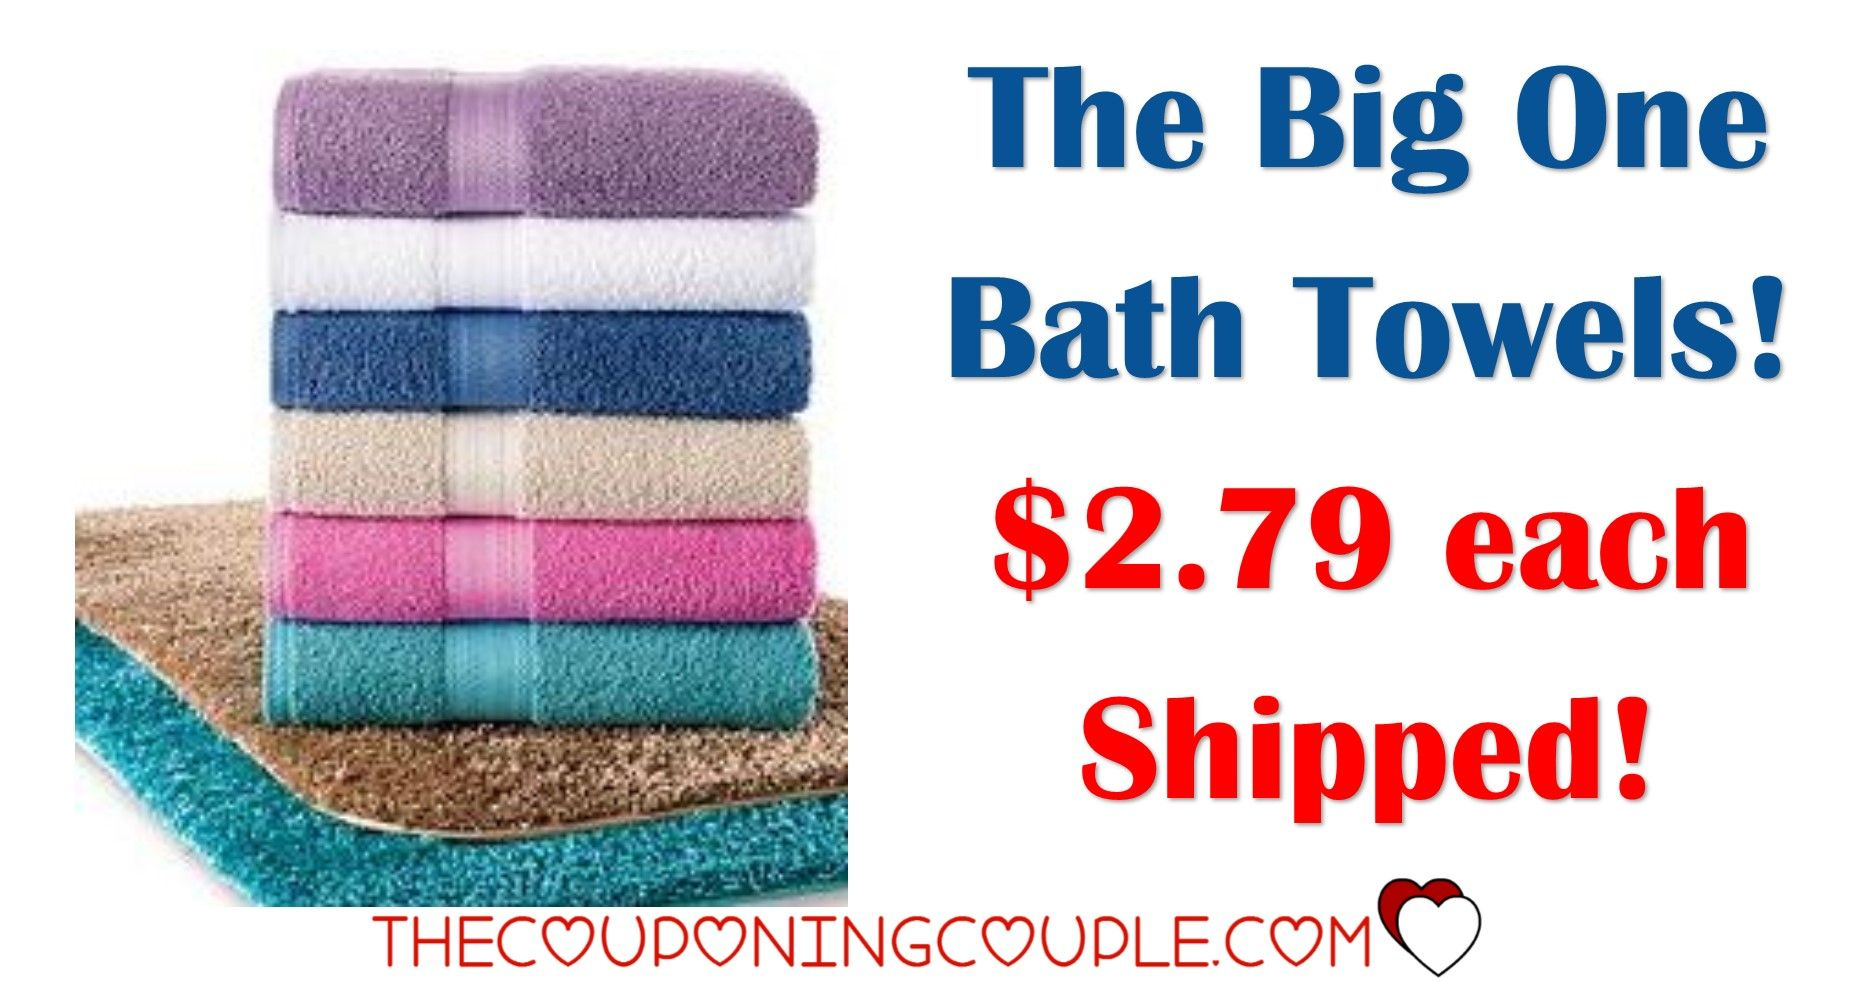 Kohls Bath Towels Magnificent Kohl's The Big One Bath Towels As Low As $279 Each  Coupon Matchups Decorating Design